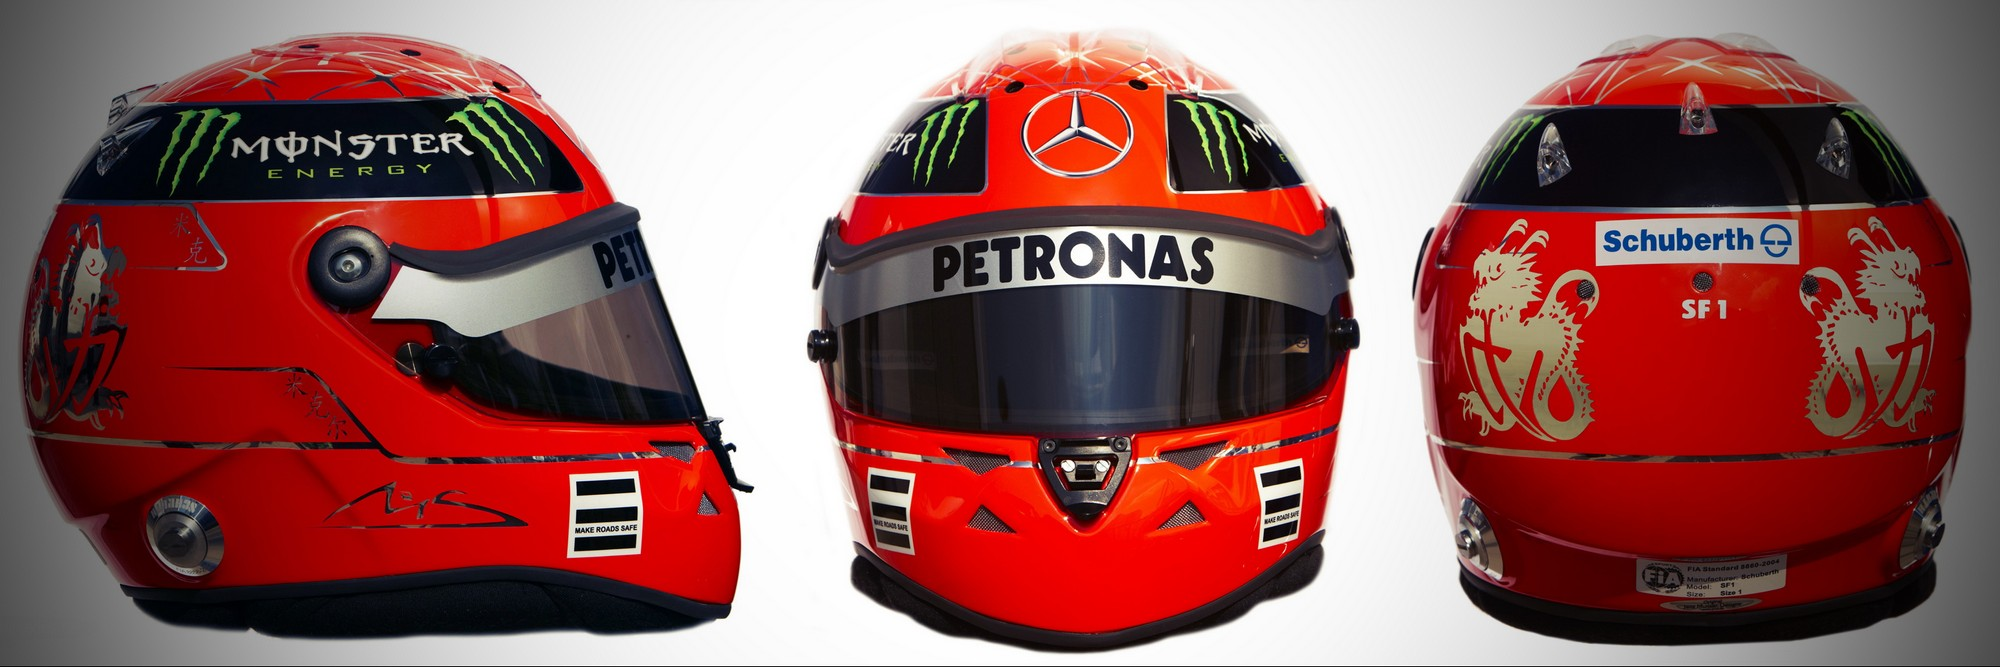 Шлем Михаэля Шумахера на сезон 2011 года | 2011 helmet of Michael Schumacher